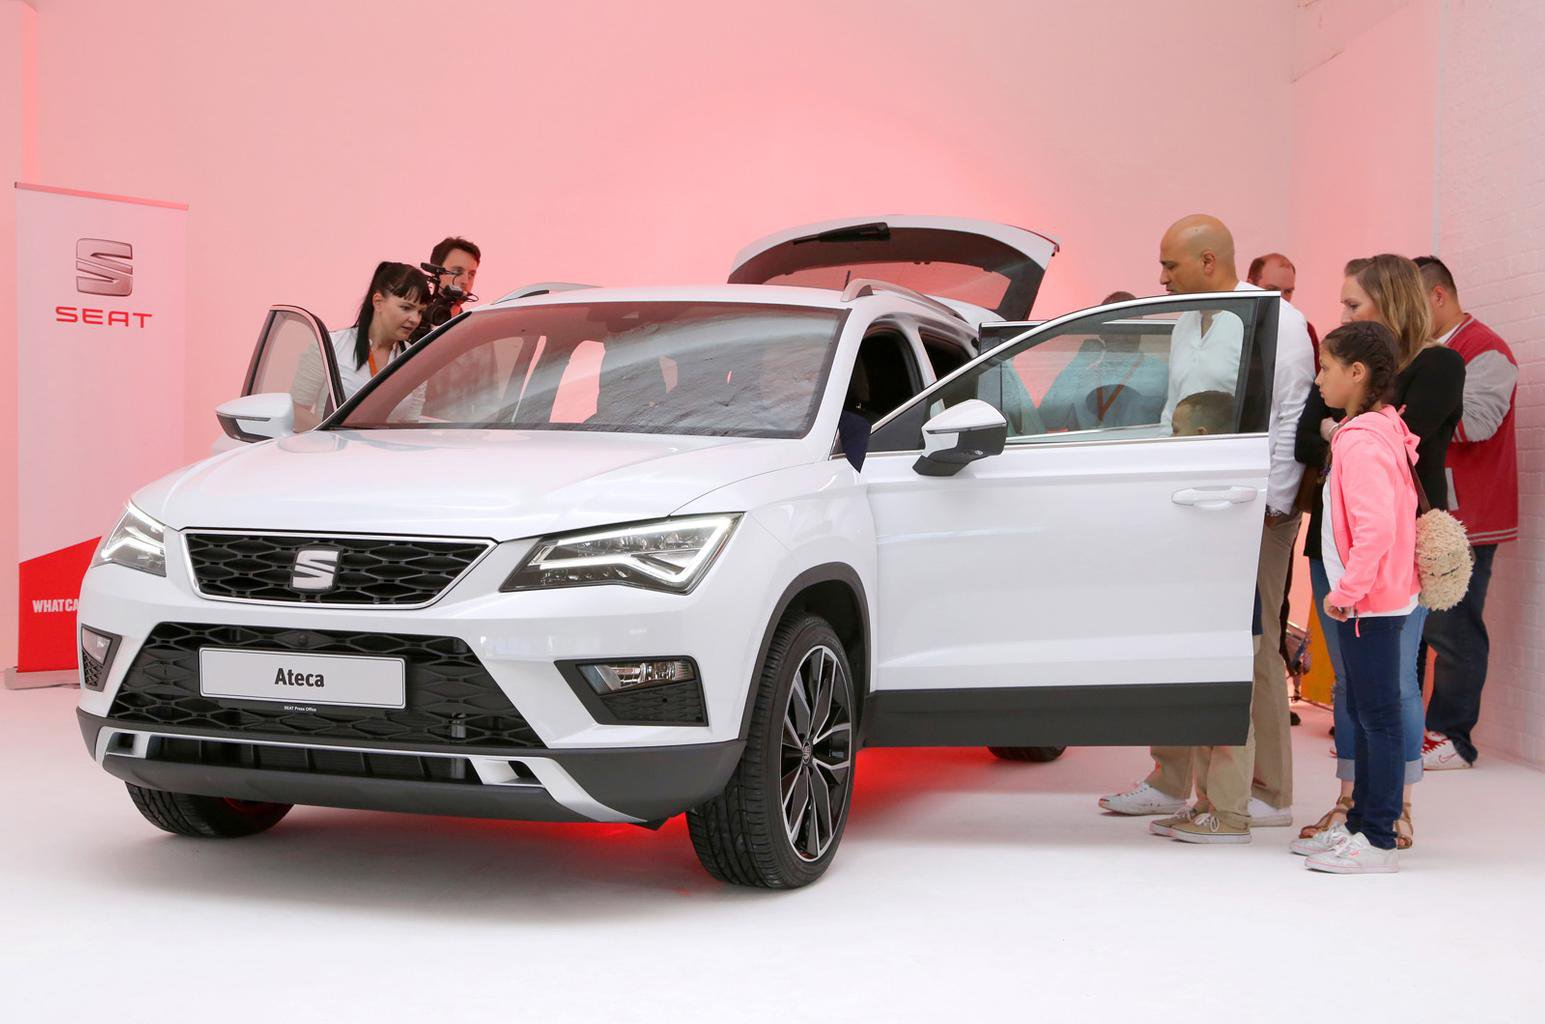 Promoted: SEAT Ateca – an ideal SUV for young families